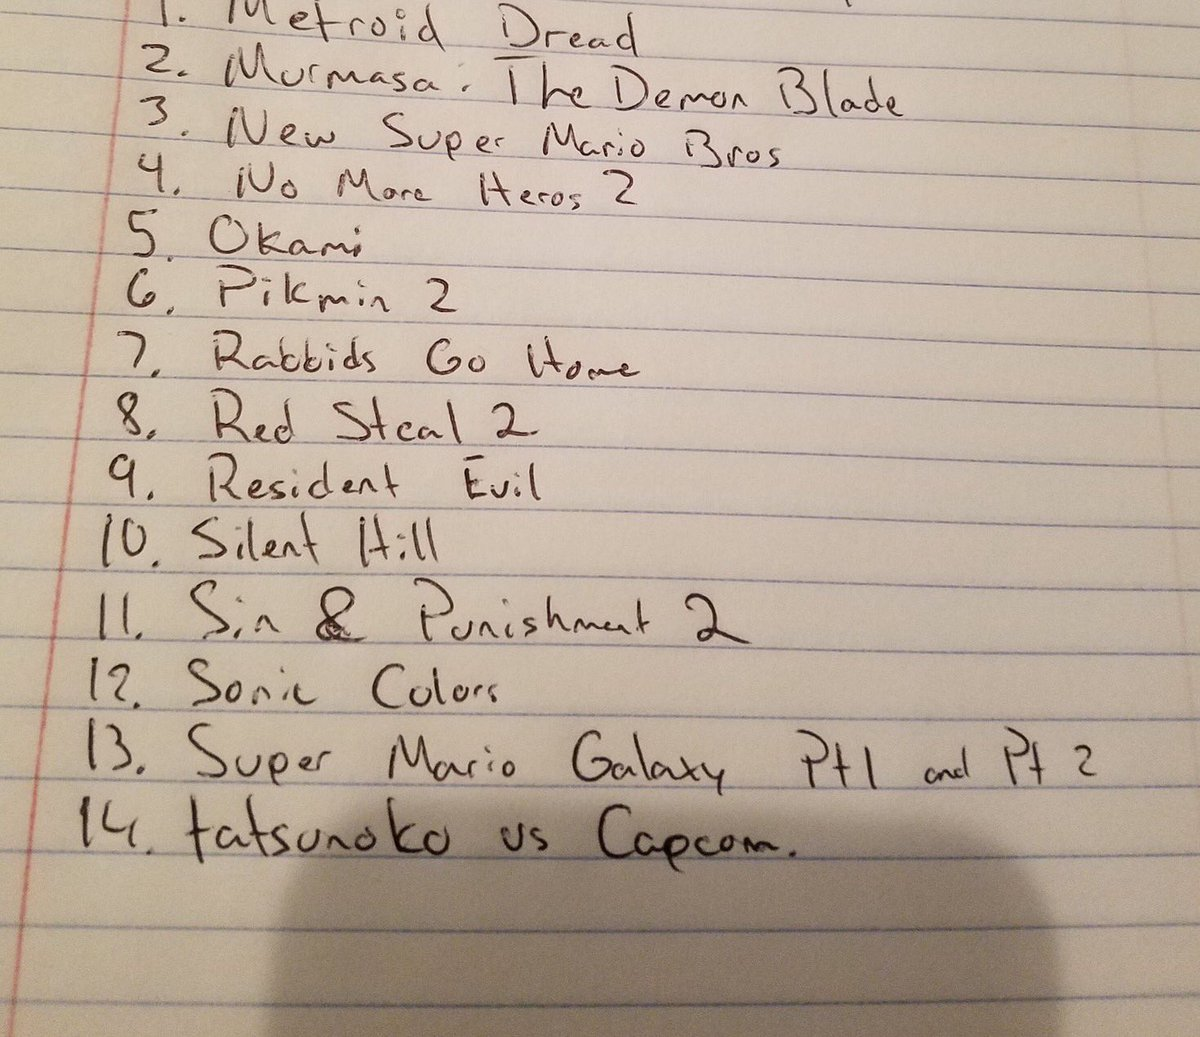 Coloring book tracklist chance the rapper - Rumored Tracklist Or A Samples List For Kanye West S Turbo Grafx 16 From Pete S Instagram